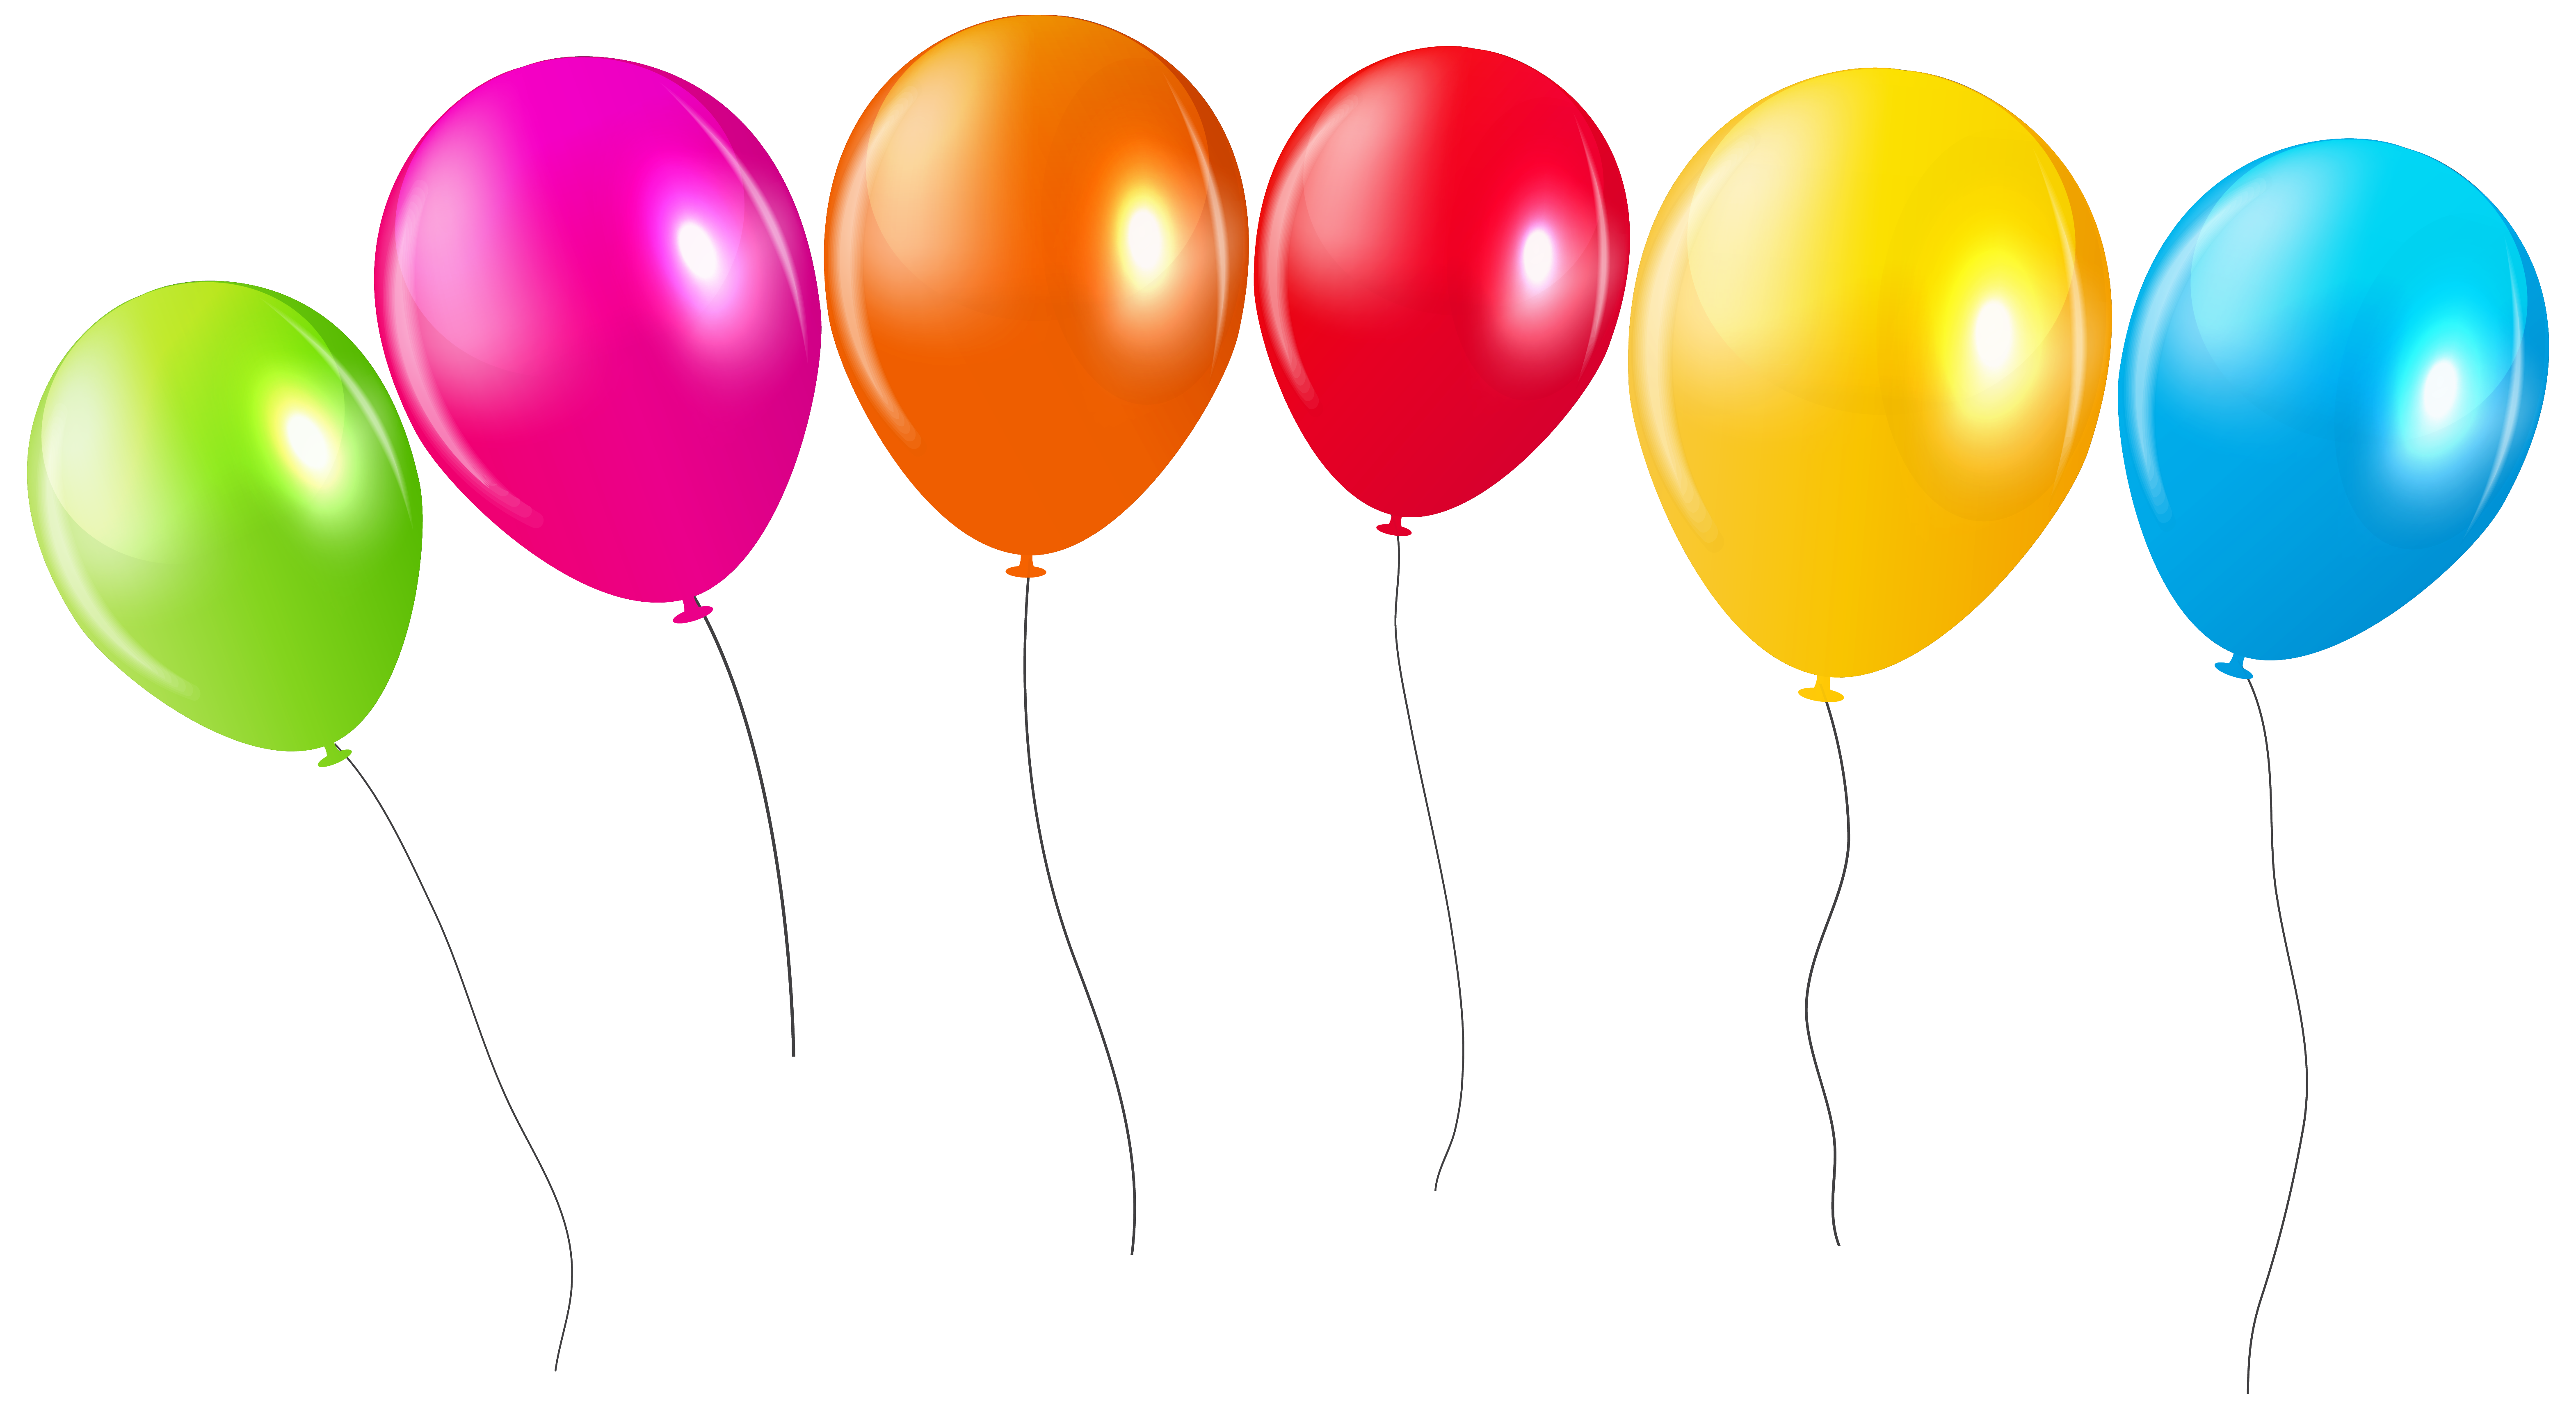 Balloons png transparent background. Colorful clipar gallery yopriceville